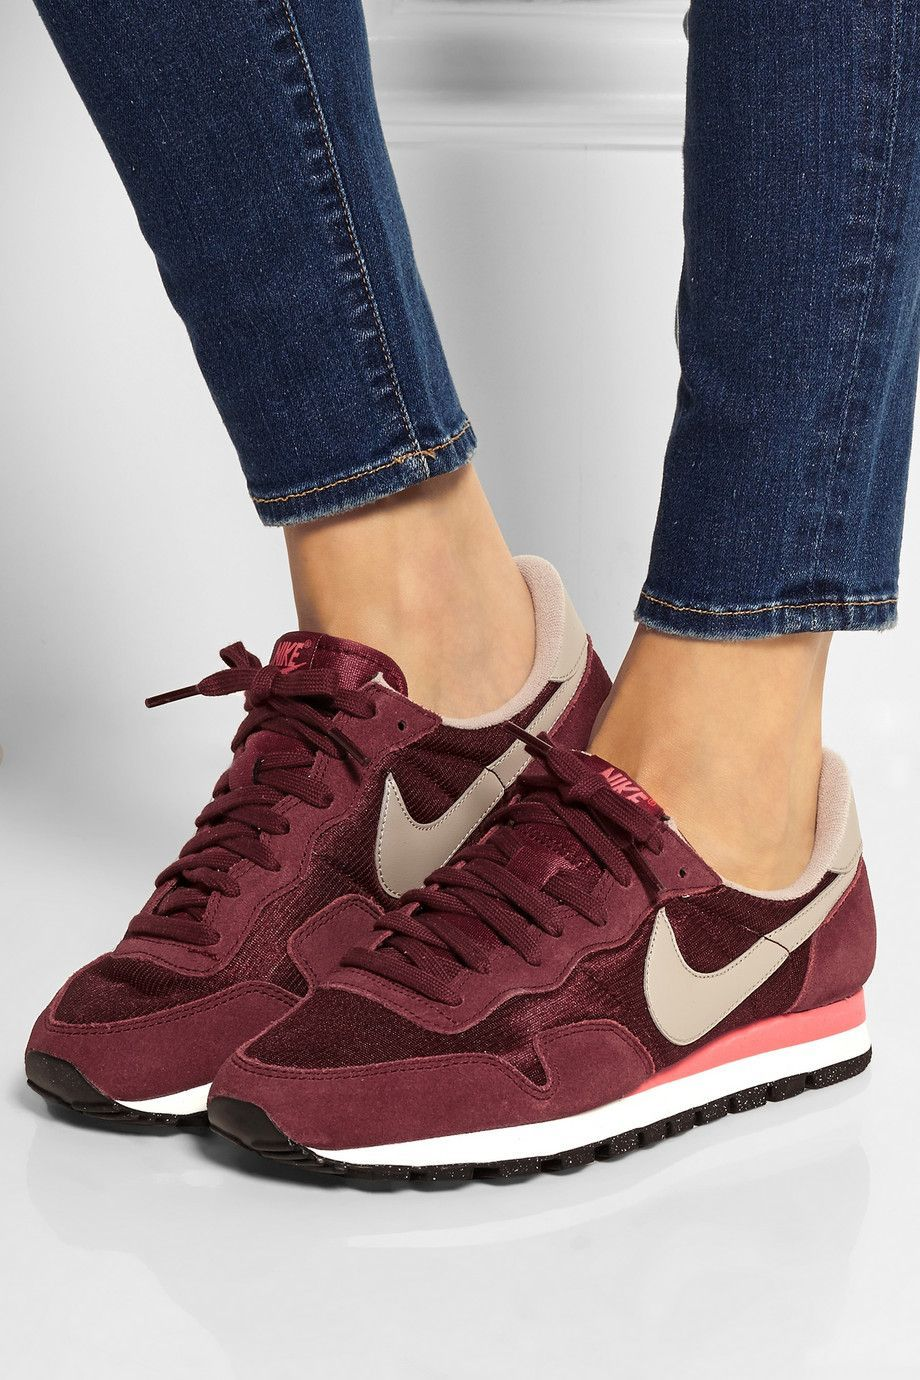 sale retailer c3786 2d67e Nike   Air Pegasus 83 suede and mesh sneakers   NET-A-PORTER.COM Clothing,  Shoes   Jewelry   Women   Shoes amzn.to 2k0ZSzK